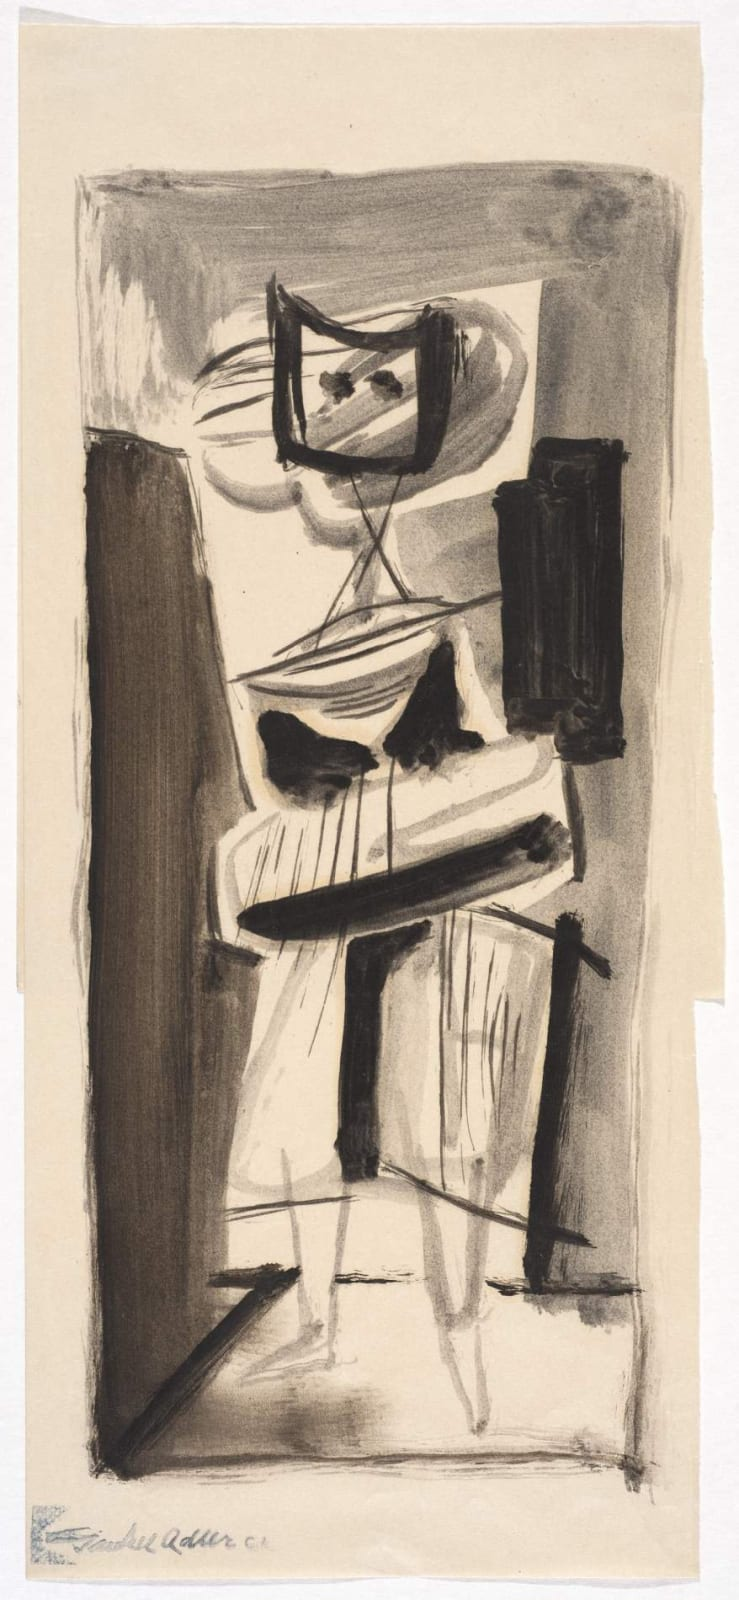 Jankel Adler (1895-1949) Untitled (Figure) n.d. Pen and ink on paper 31 x 13 cm Charles Bezalel Aukin Collection To see and discover more about this artist click here